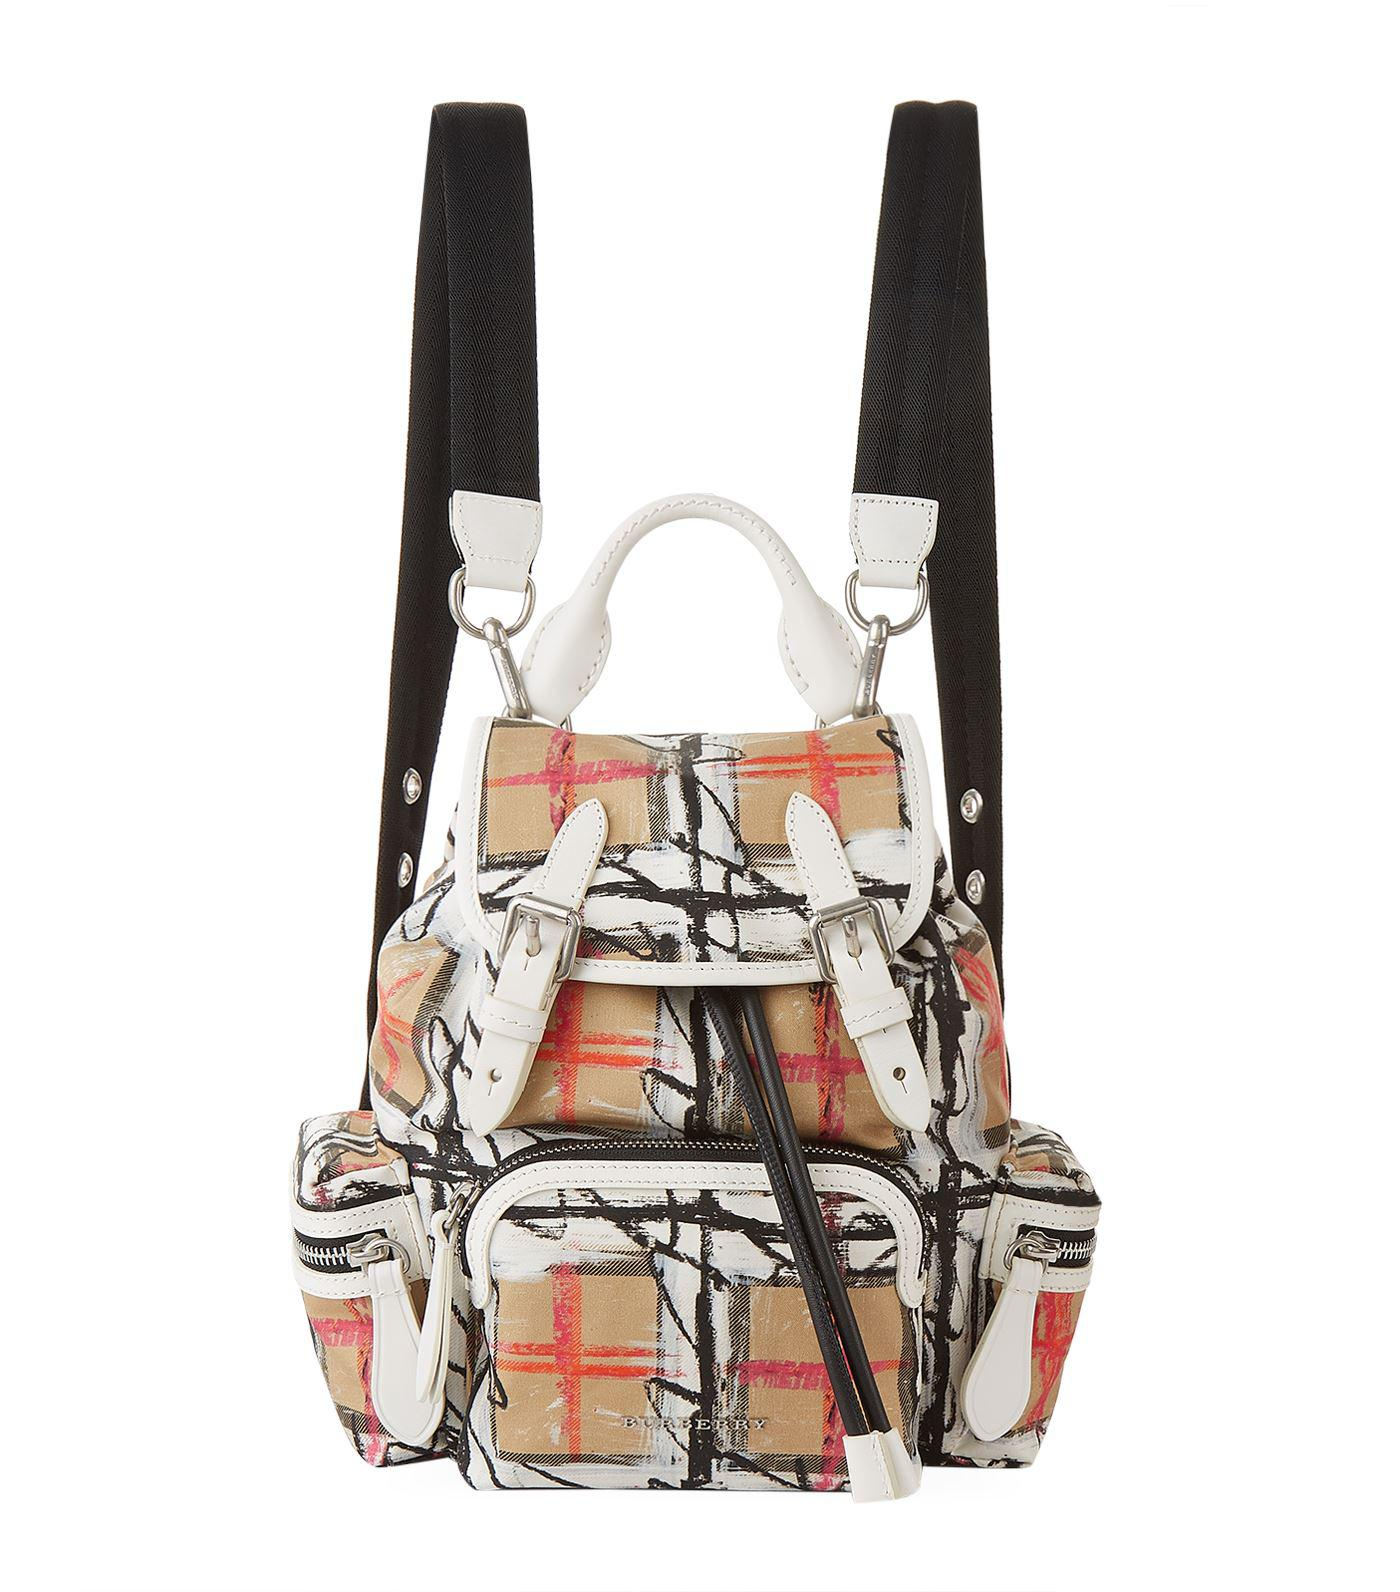 Lyst - Burberry Small Scribble Vintage Check Backpack in White ba1f0d0a78c26